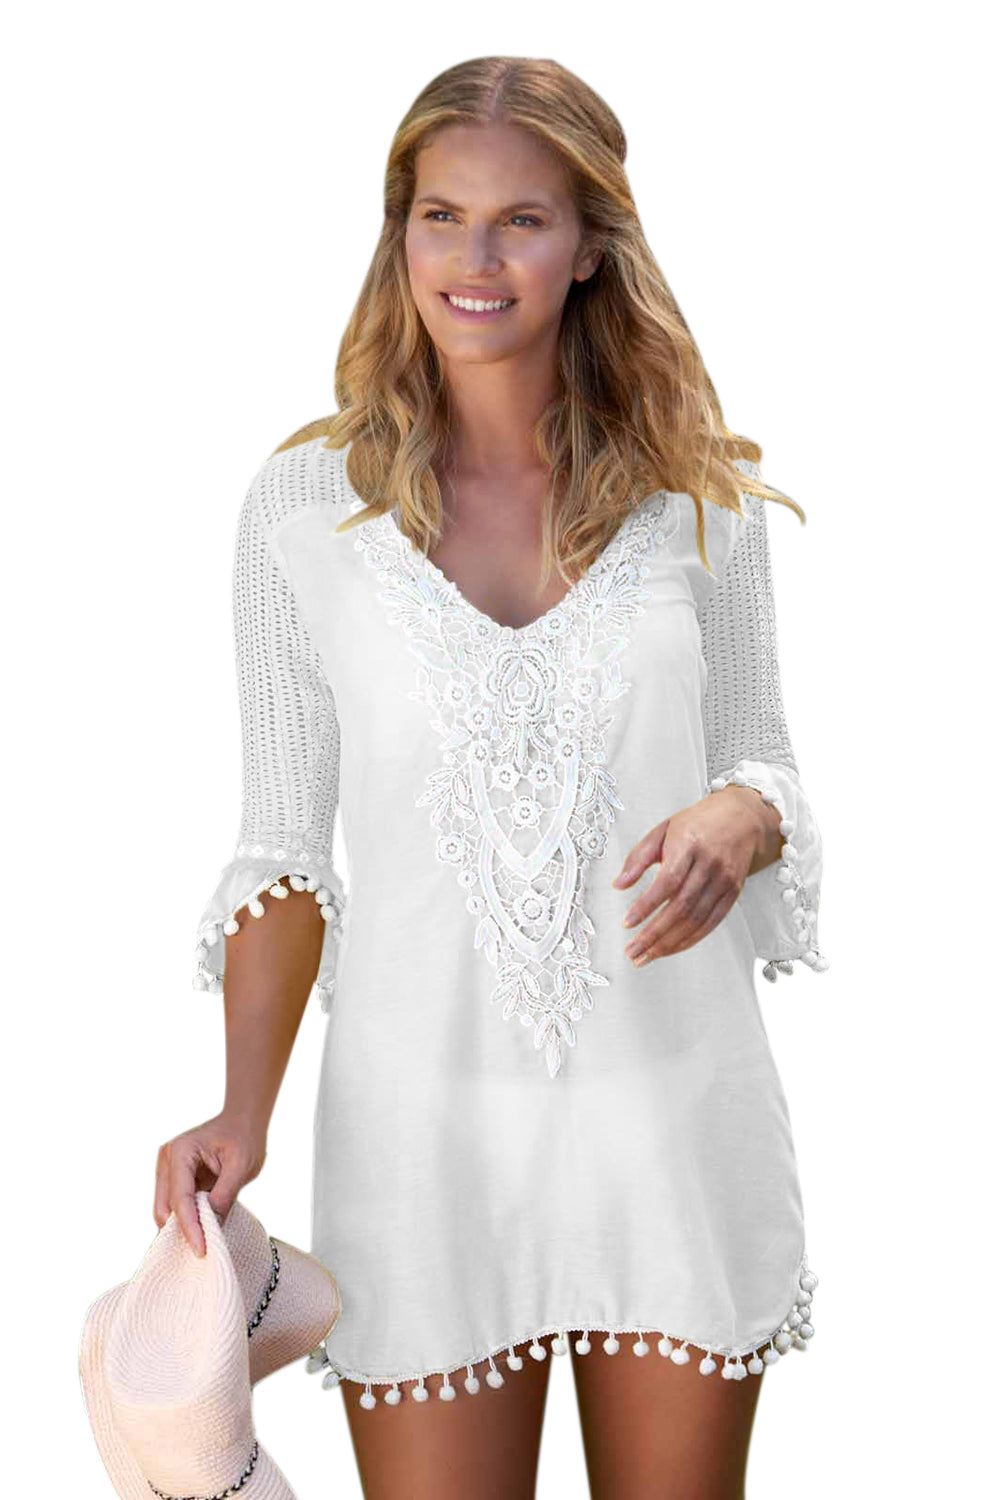 White Crochet Pom Pom Trim Beach Tunic Cover up Beach Dresses Discount Designer Fashion Clothes Shoes Bags Women Men Kids Children Black Owned Business